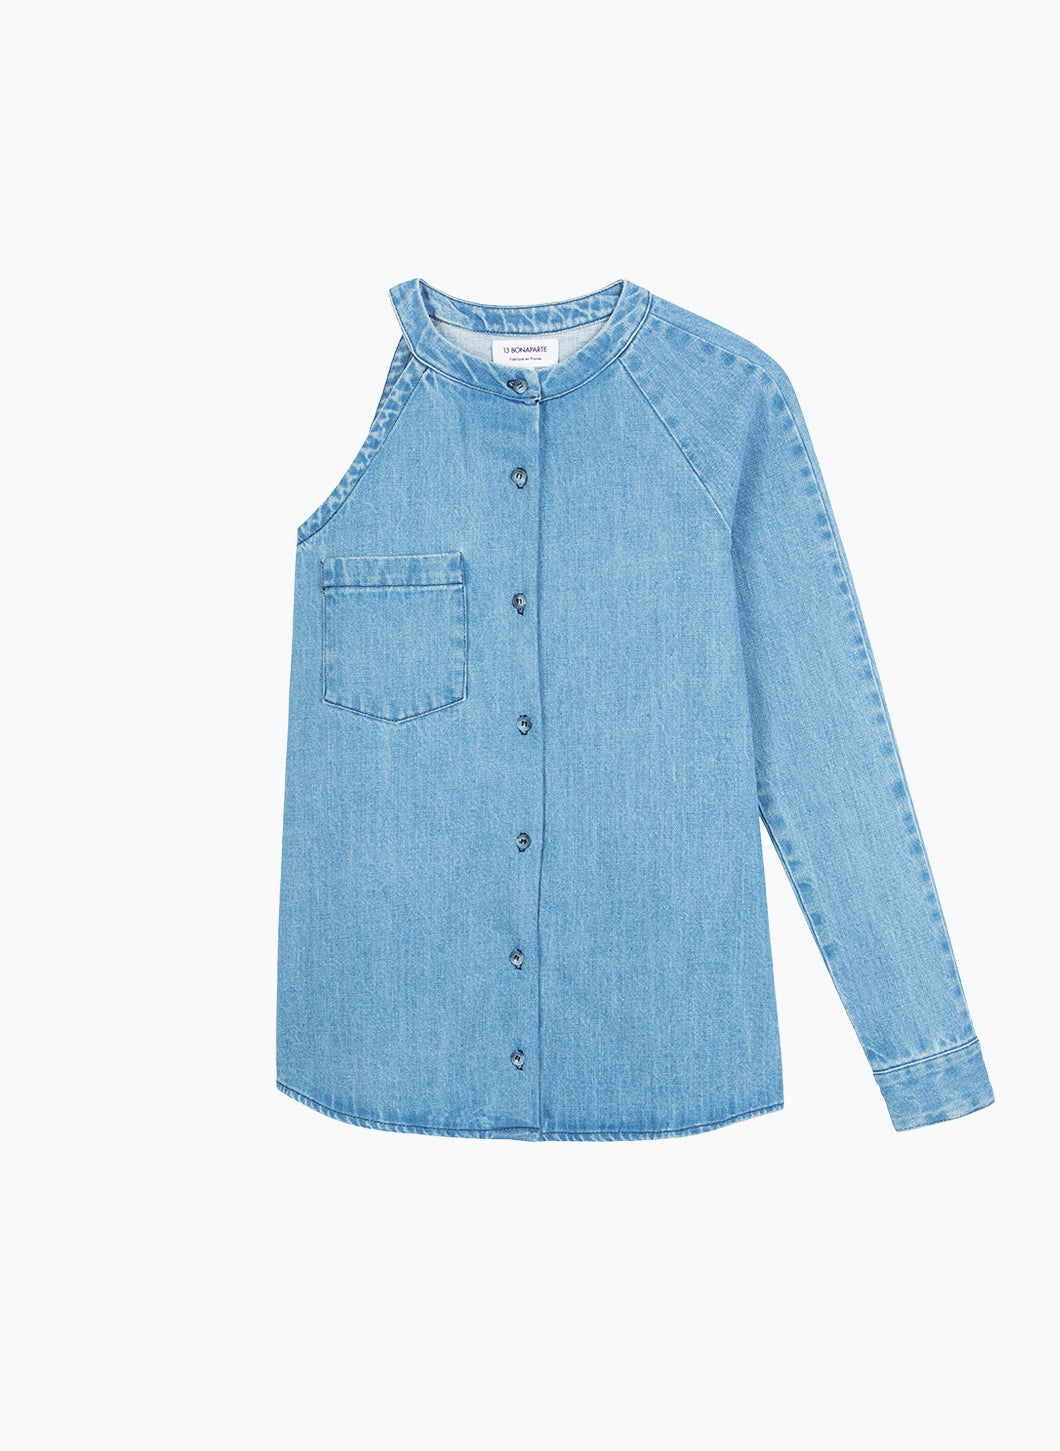 Asymmetrical Shirt in Bleached Denim